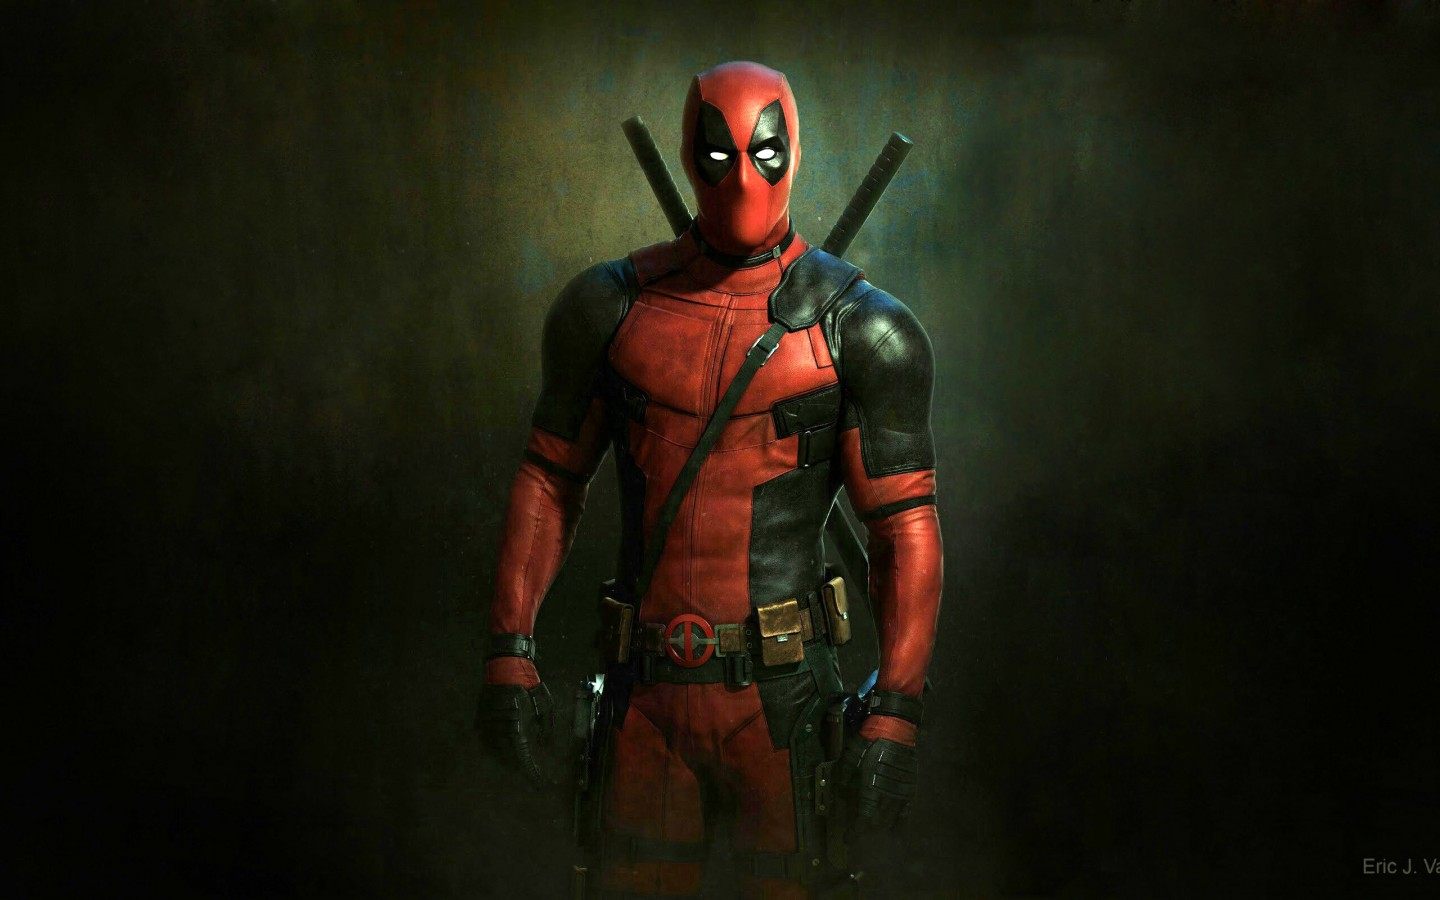 1366x768 Wallpapers Hd Cars Deadpool Wallpapers Hd Wallpapers Id 15975